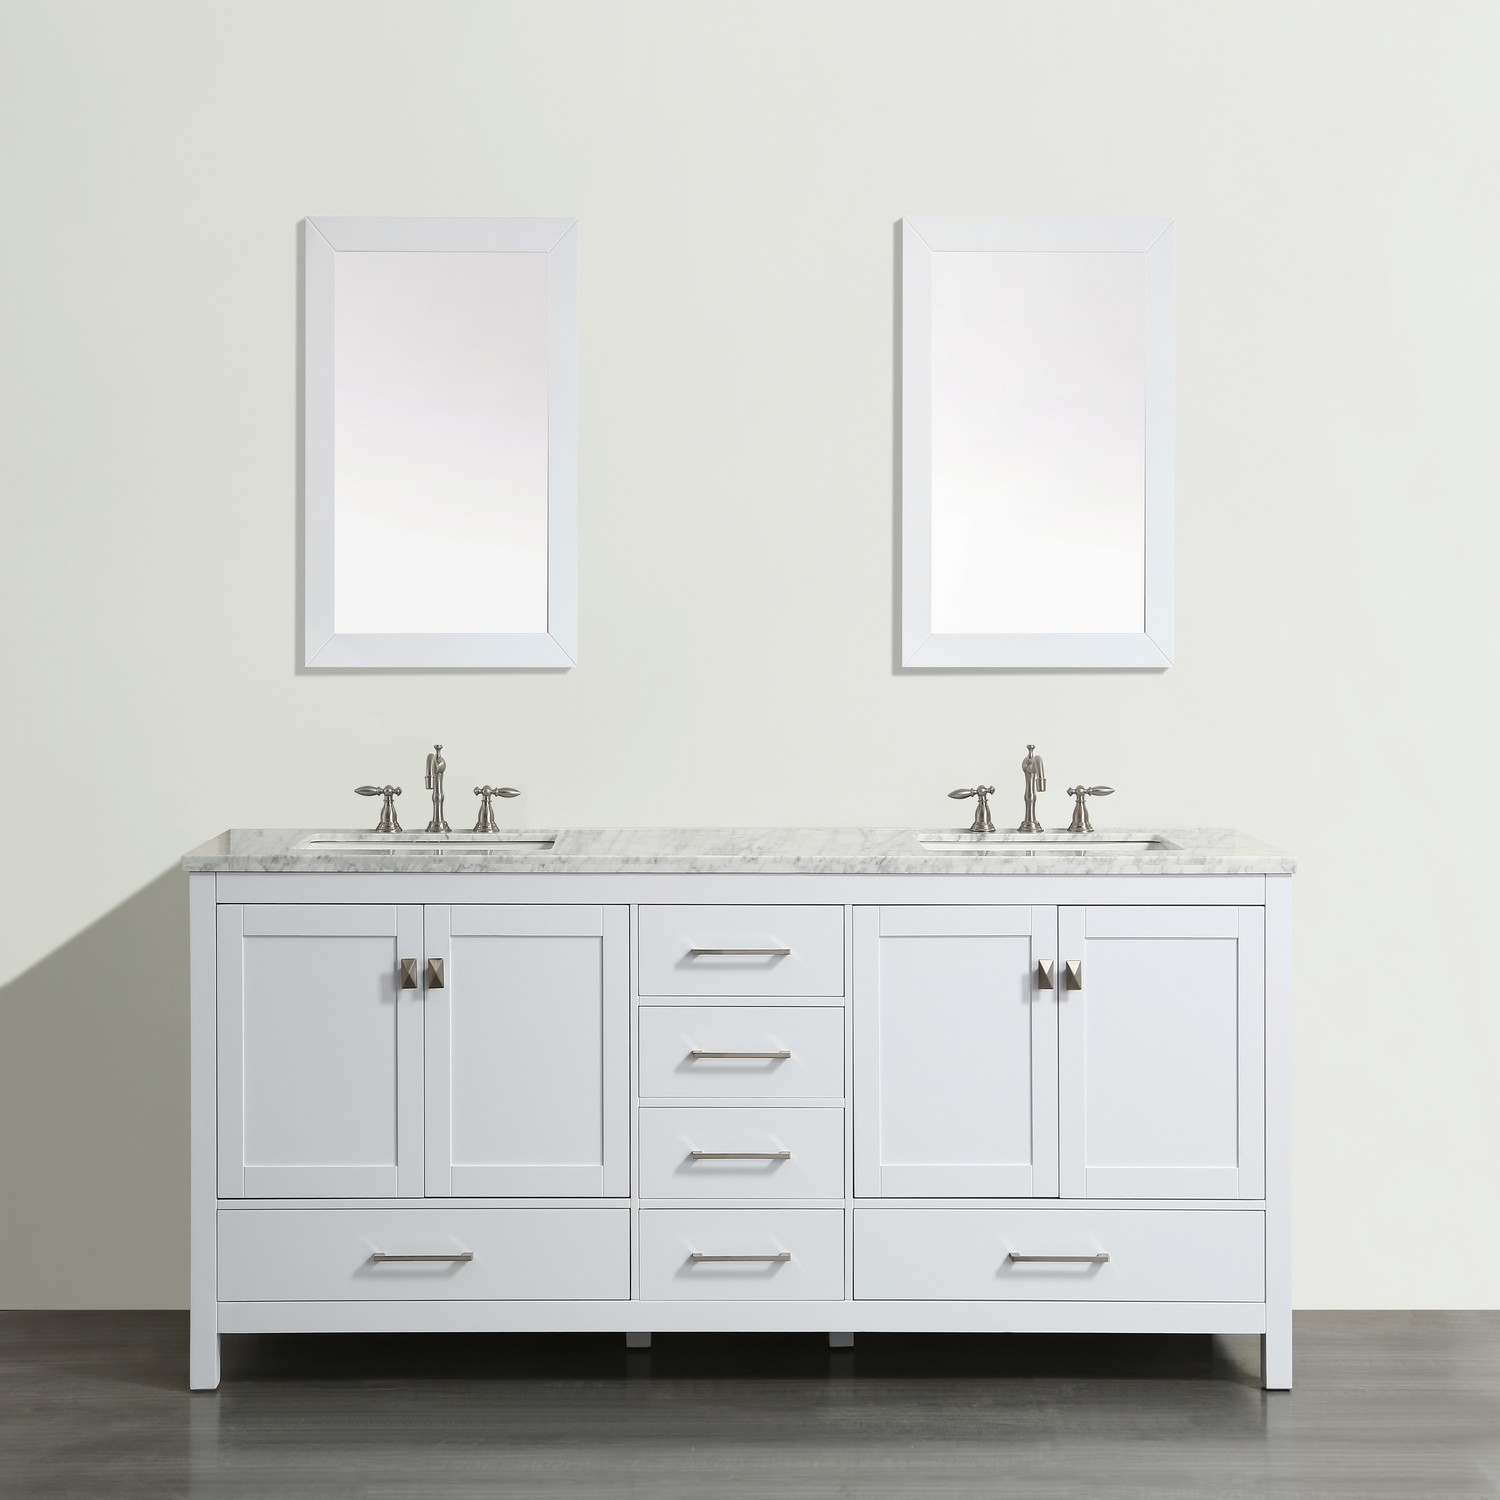 "EVVN412 84WH A Main - Eviva Aberdeen 84"" Transitional White Bathroom Vanity with White Carrera Countertop"